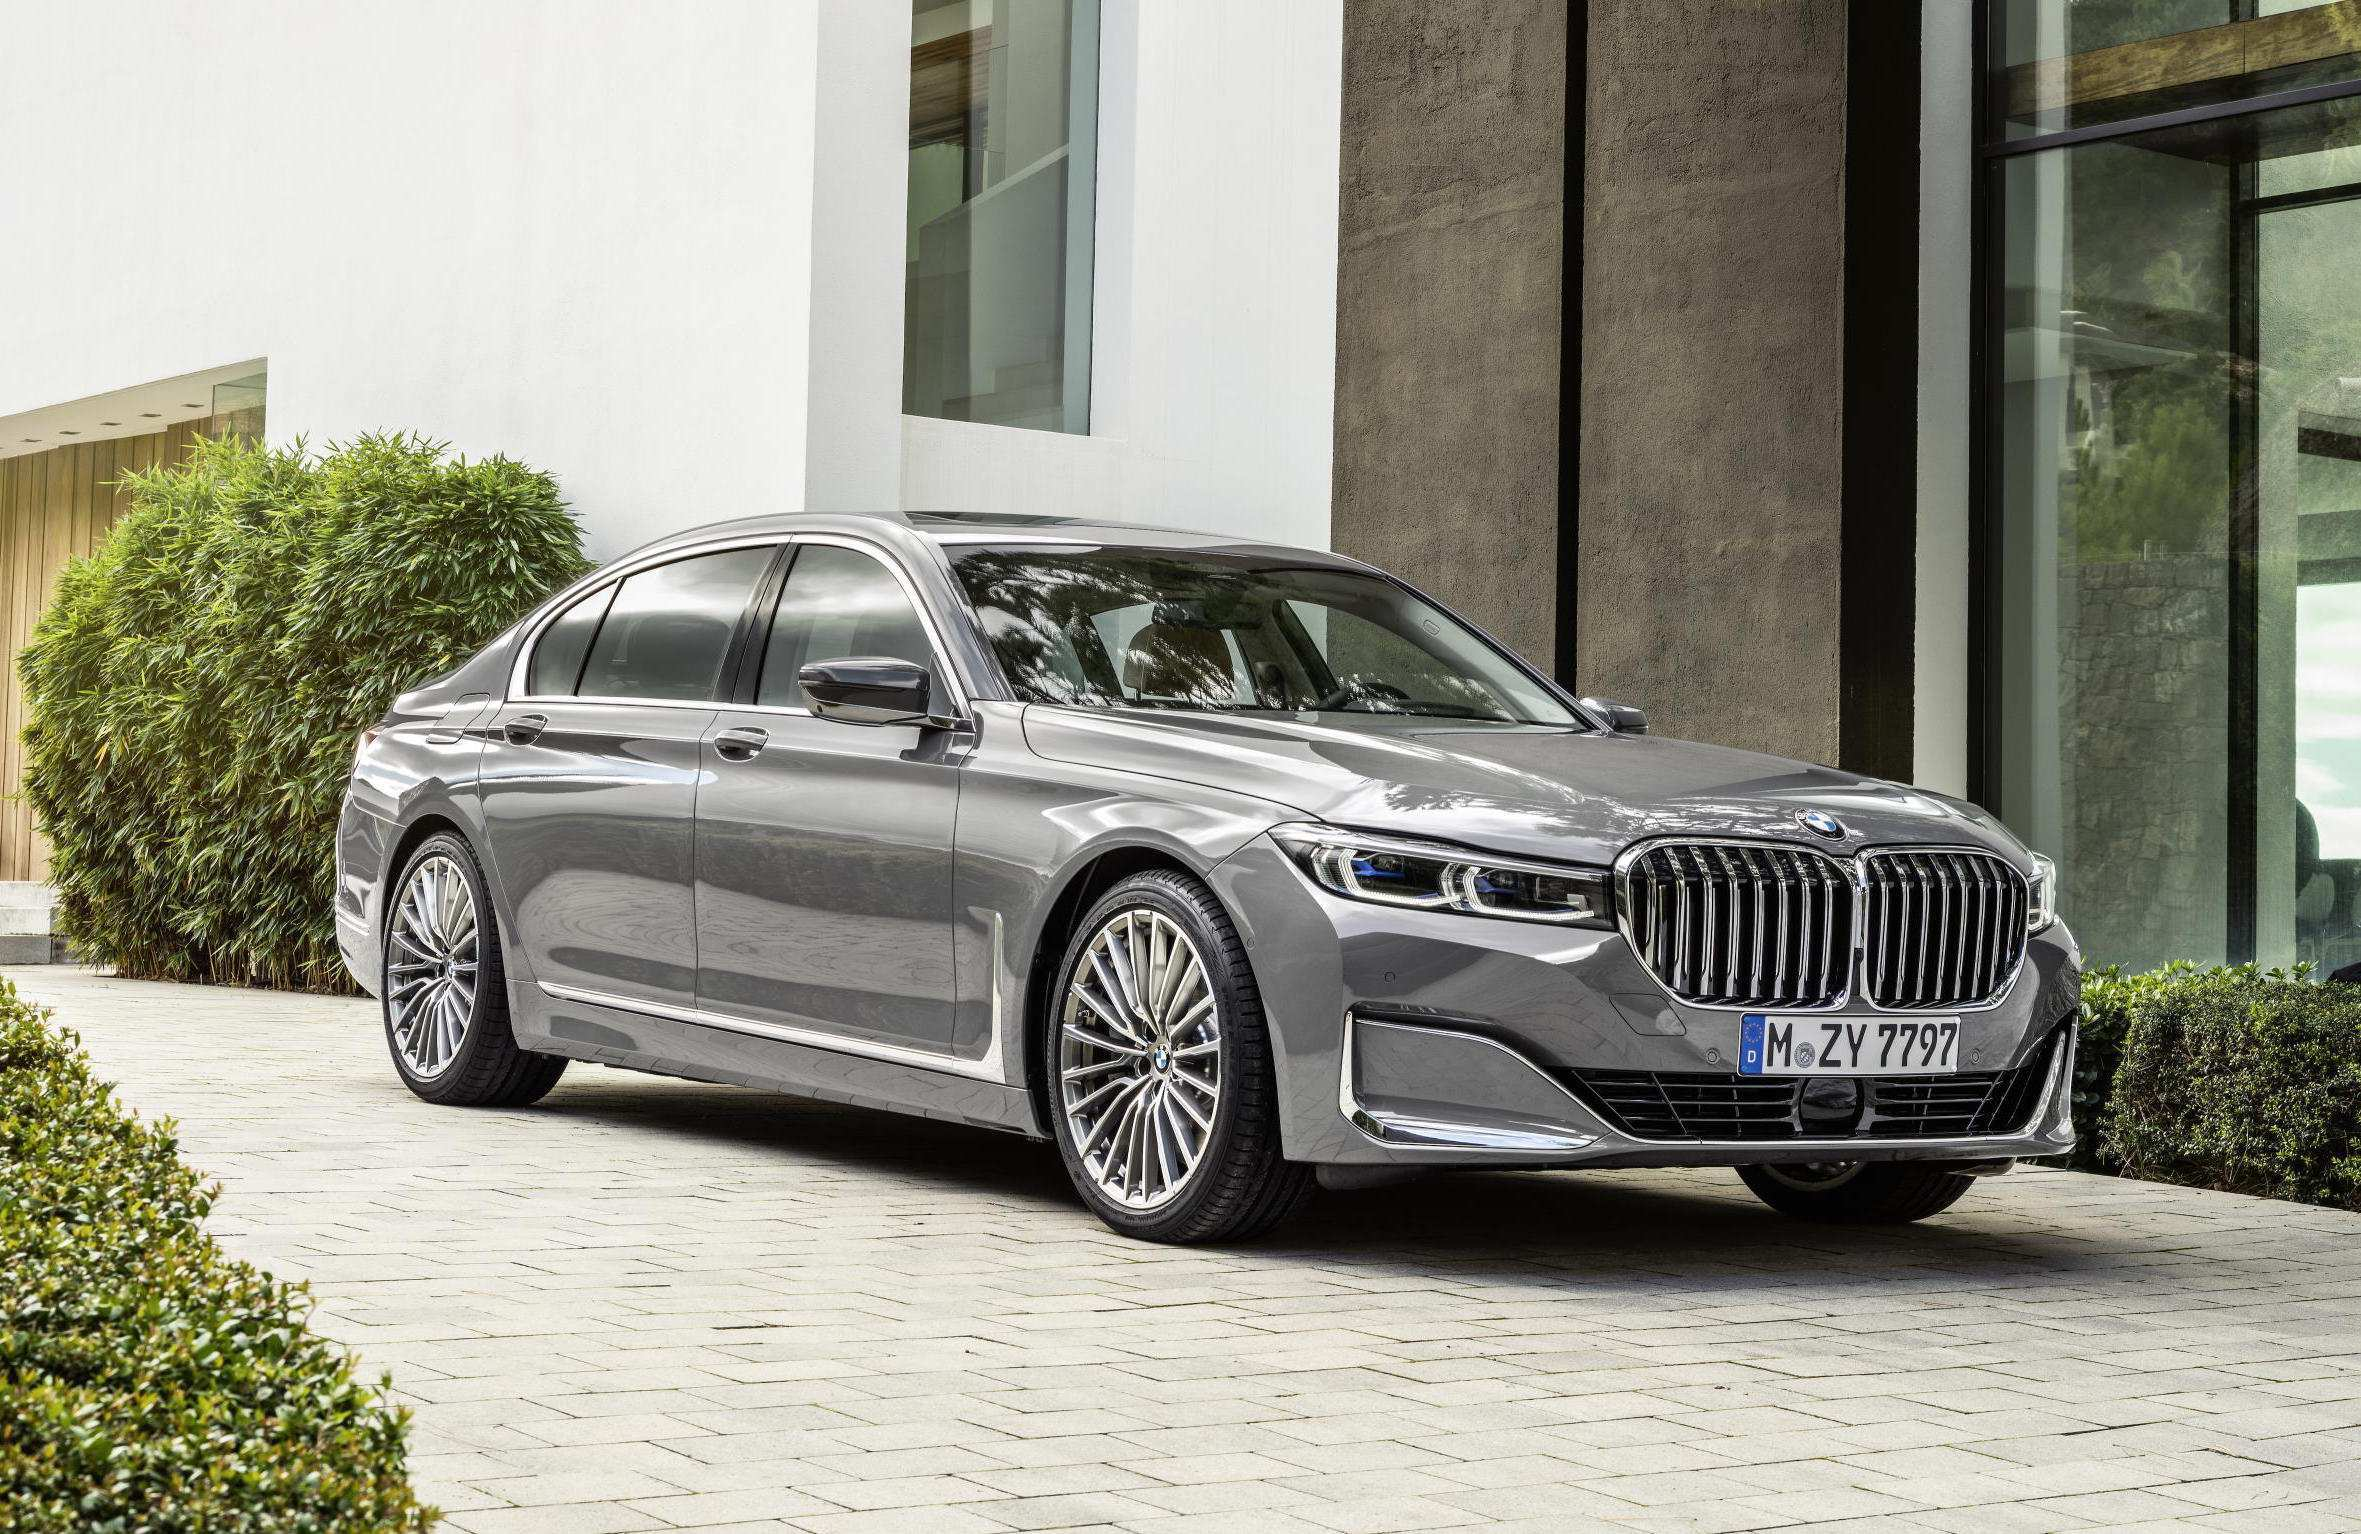 98 Gallery of 2020 BMW 7 Series Lci Prices by 2020 BMW 7 Series Lci